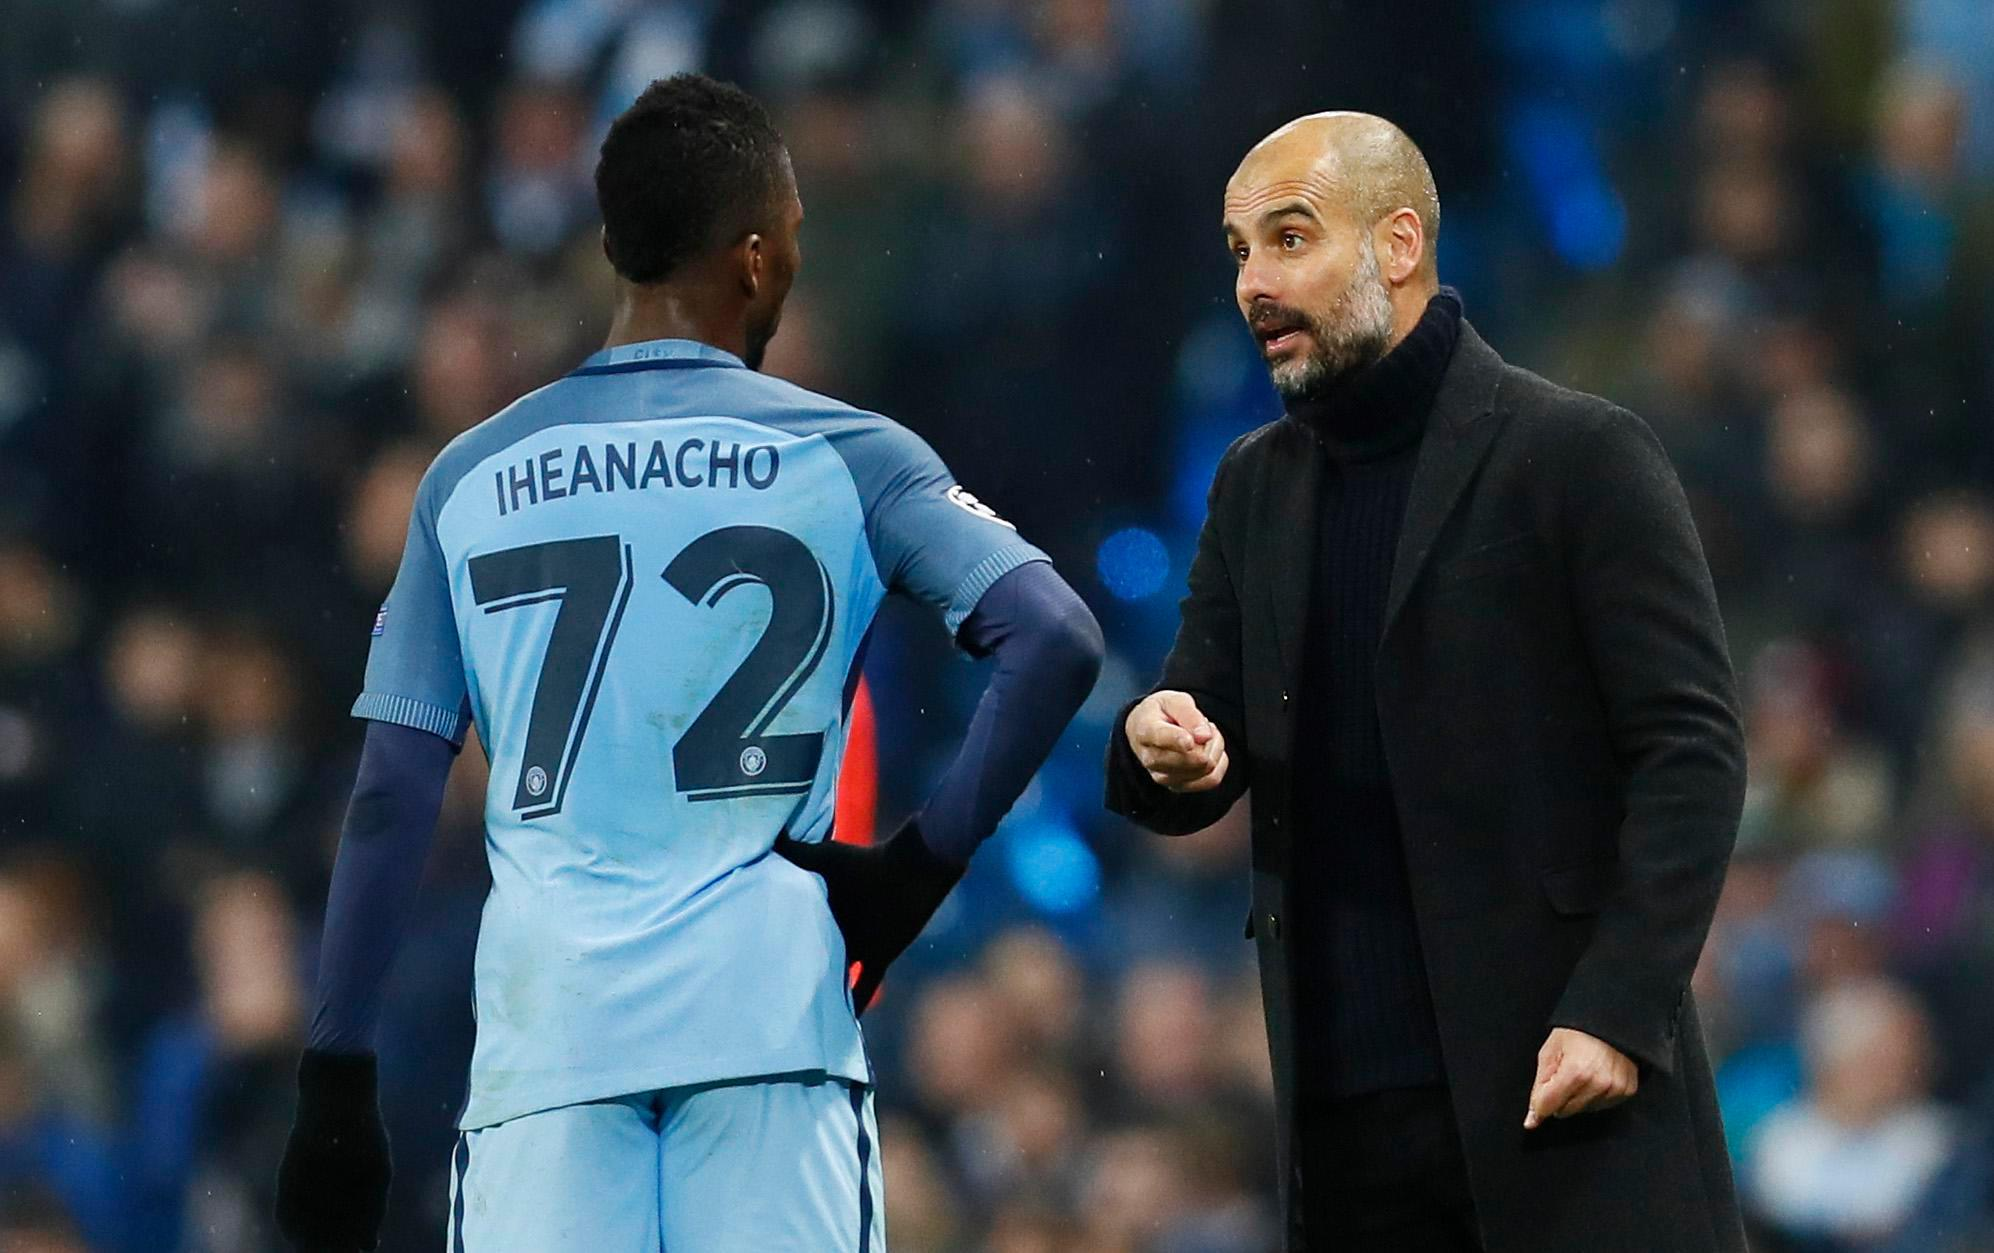 Kelechi Iheanacho was the only City youth product to feature last season